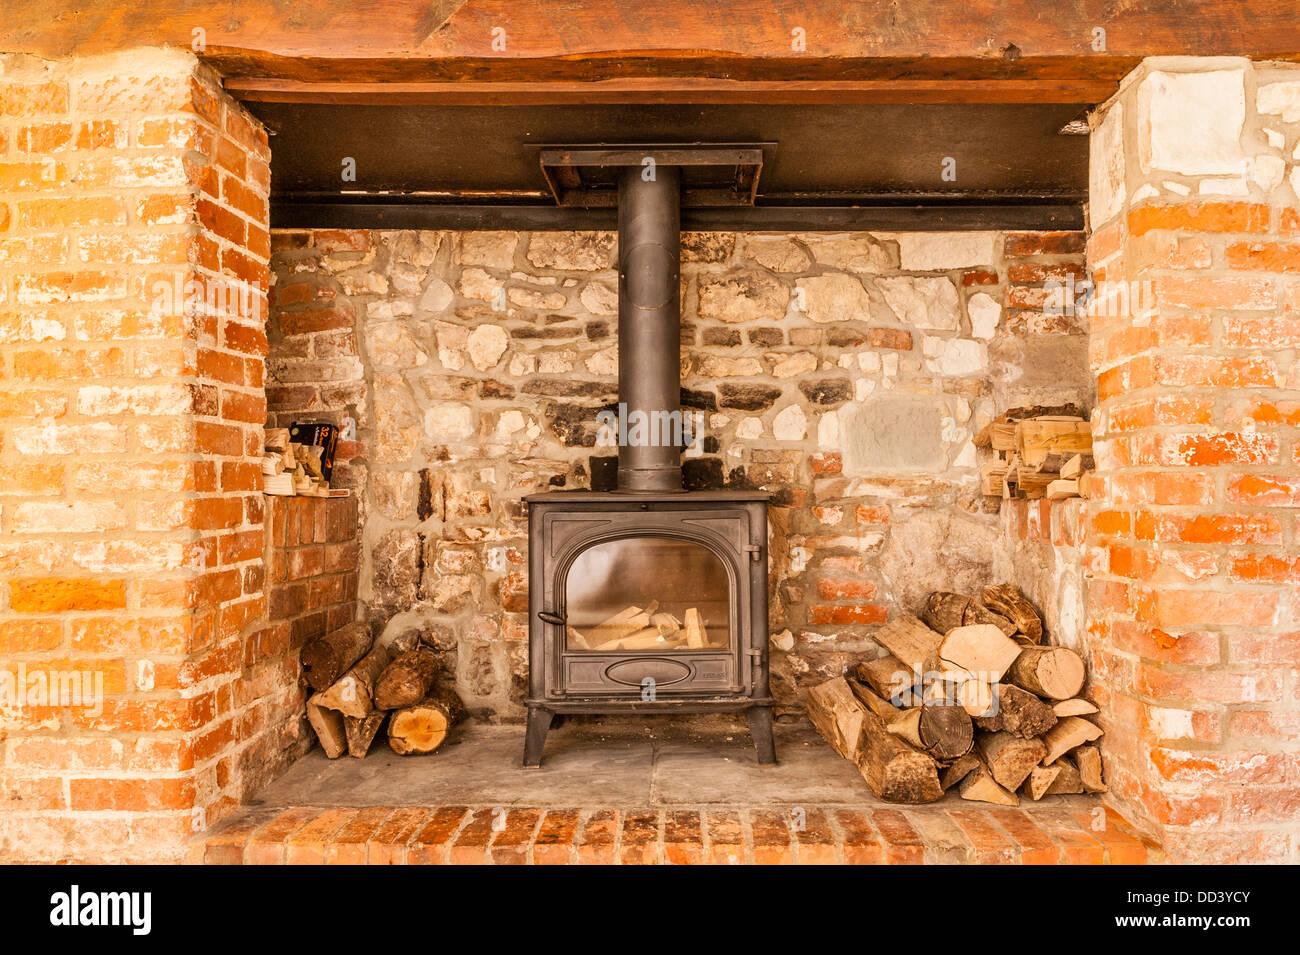 an inglenook fireplace with a woodburner stock photo royalty free